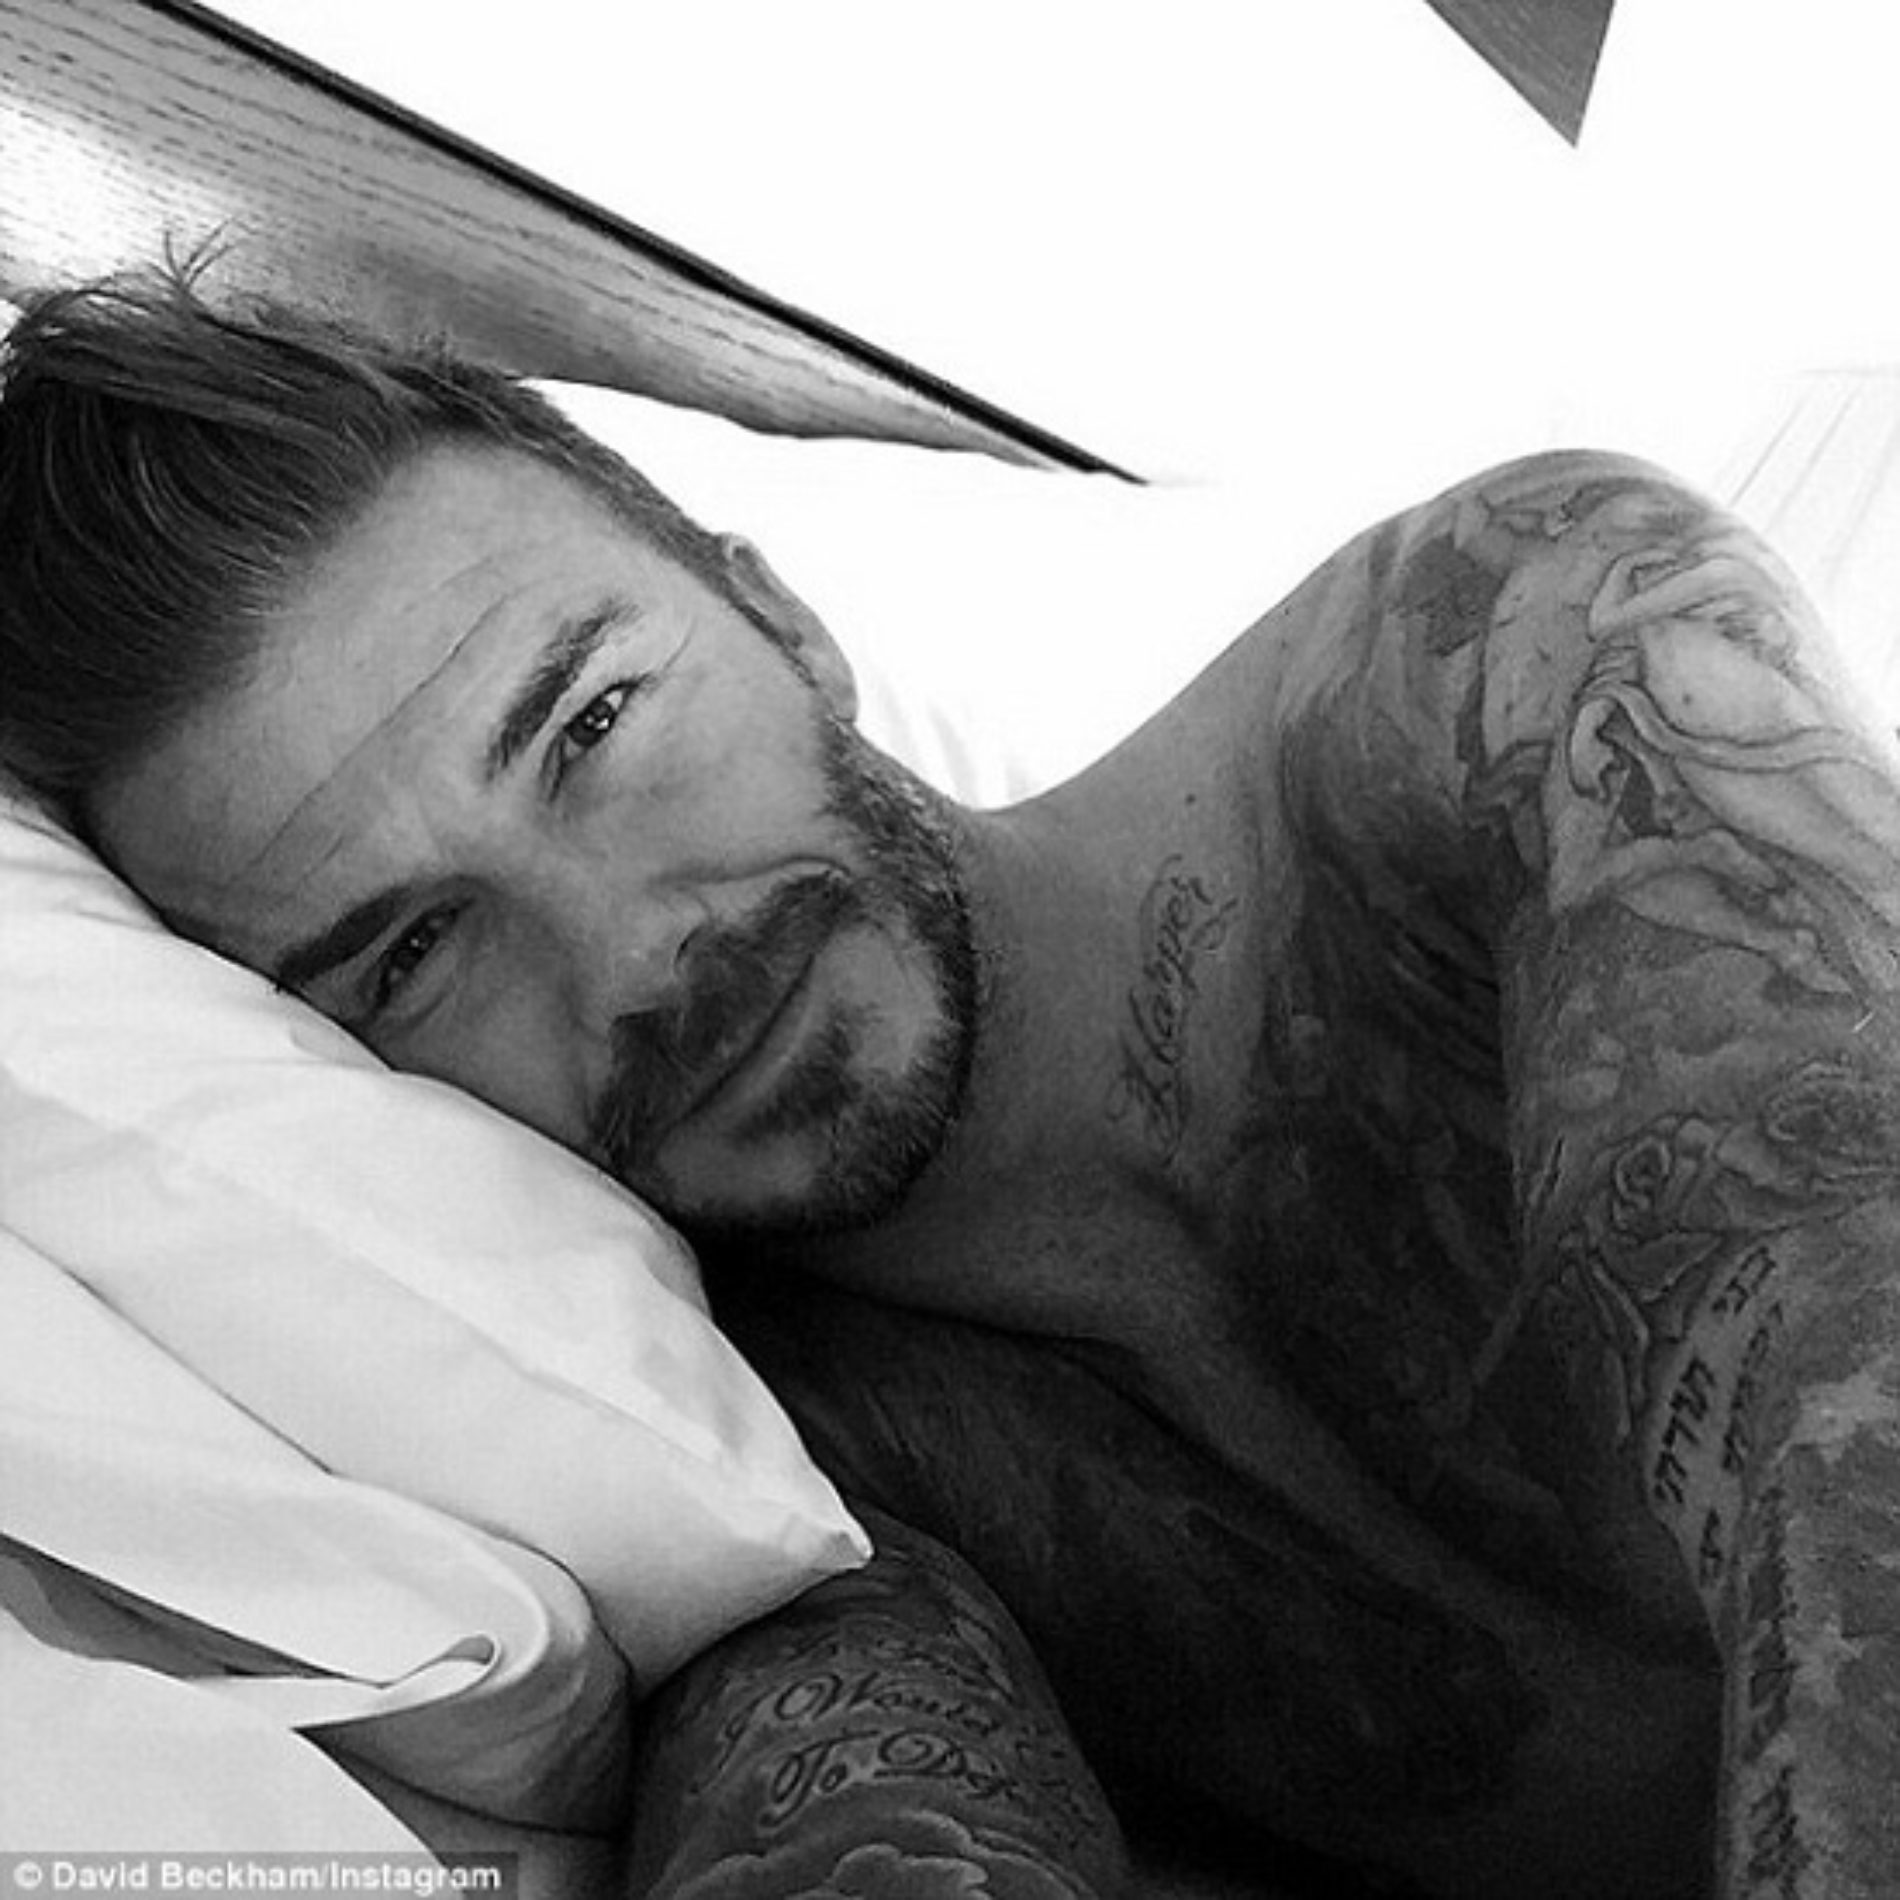 Hello! David Beckham's first Instagram snap from Marrakech as he turns 40